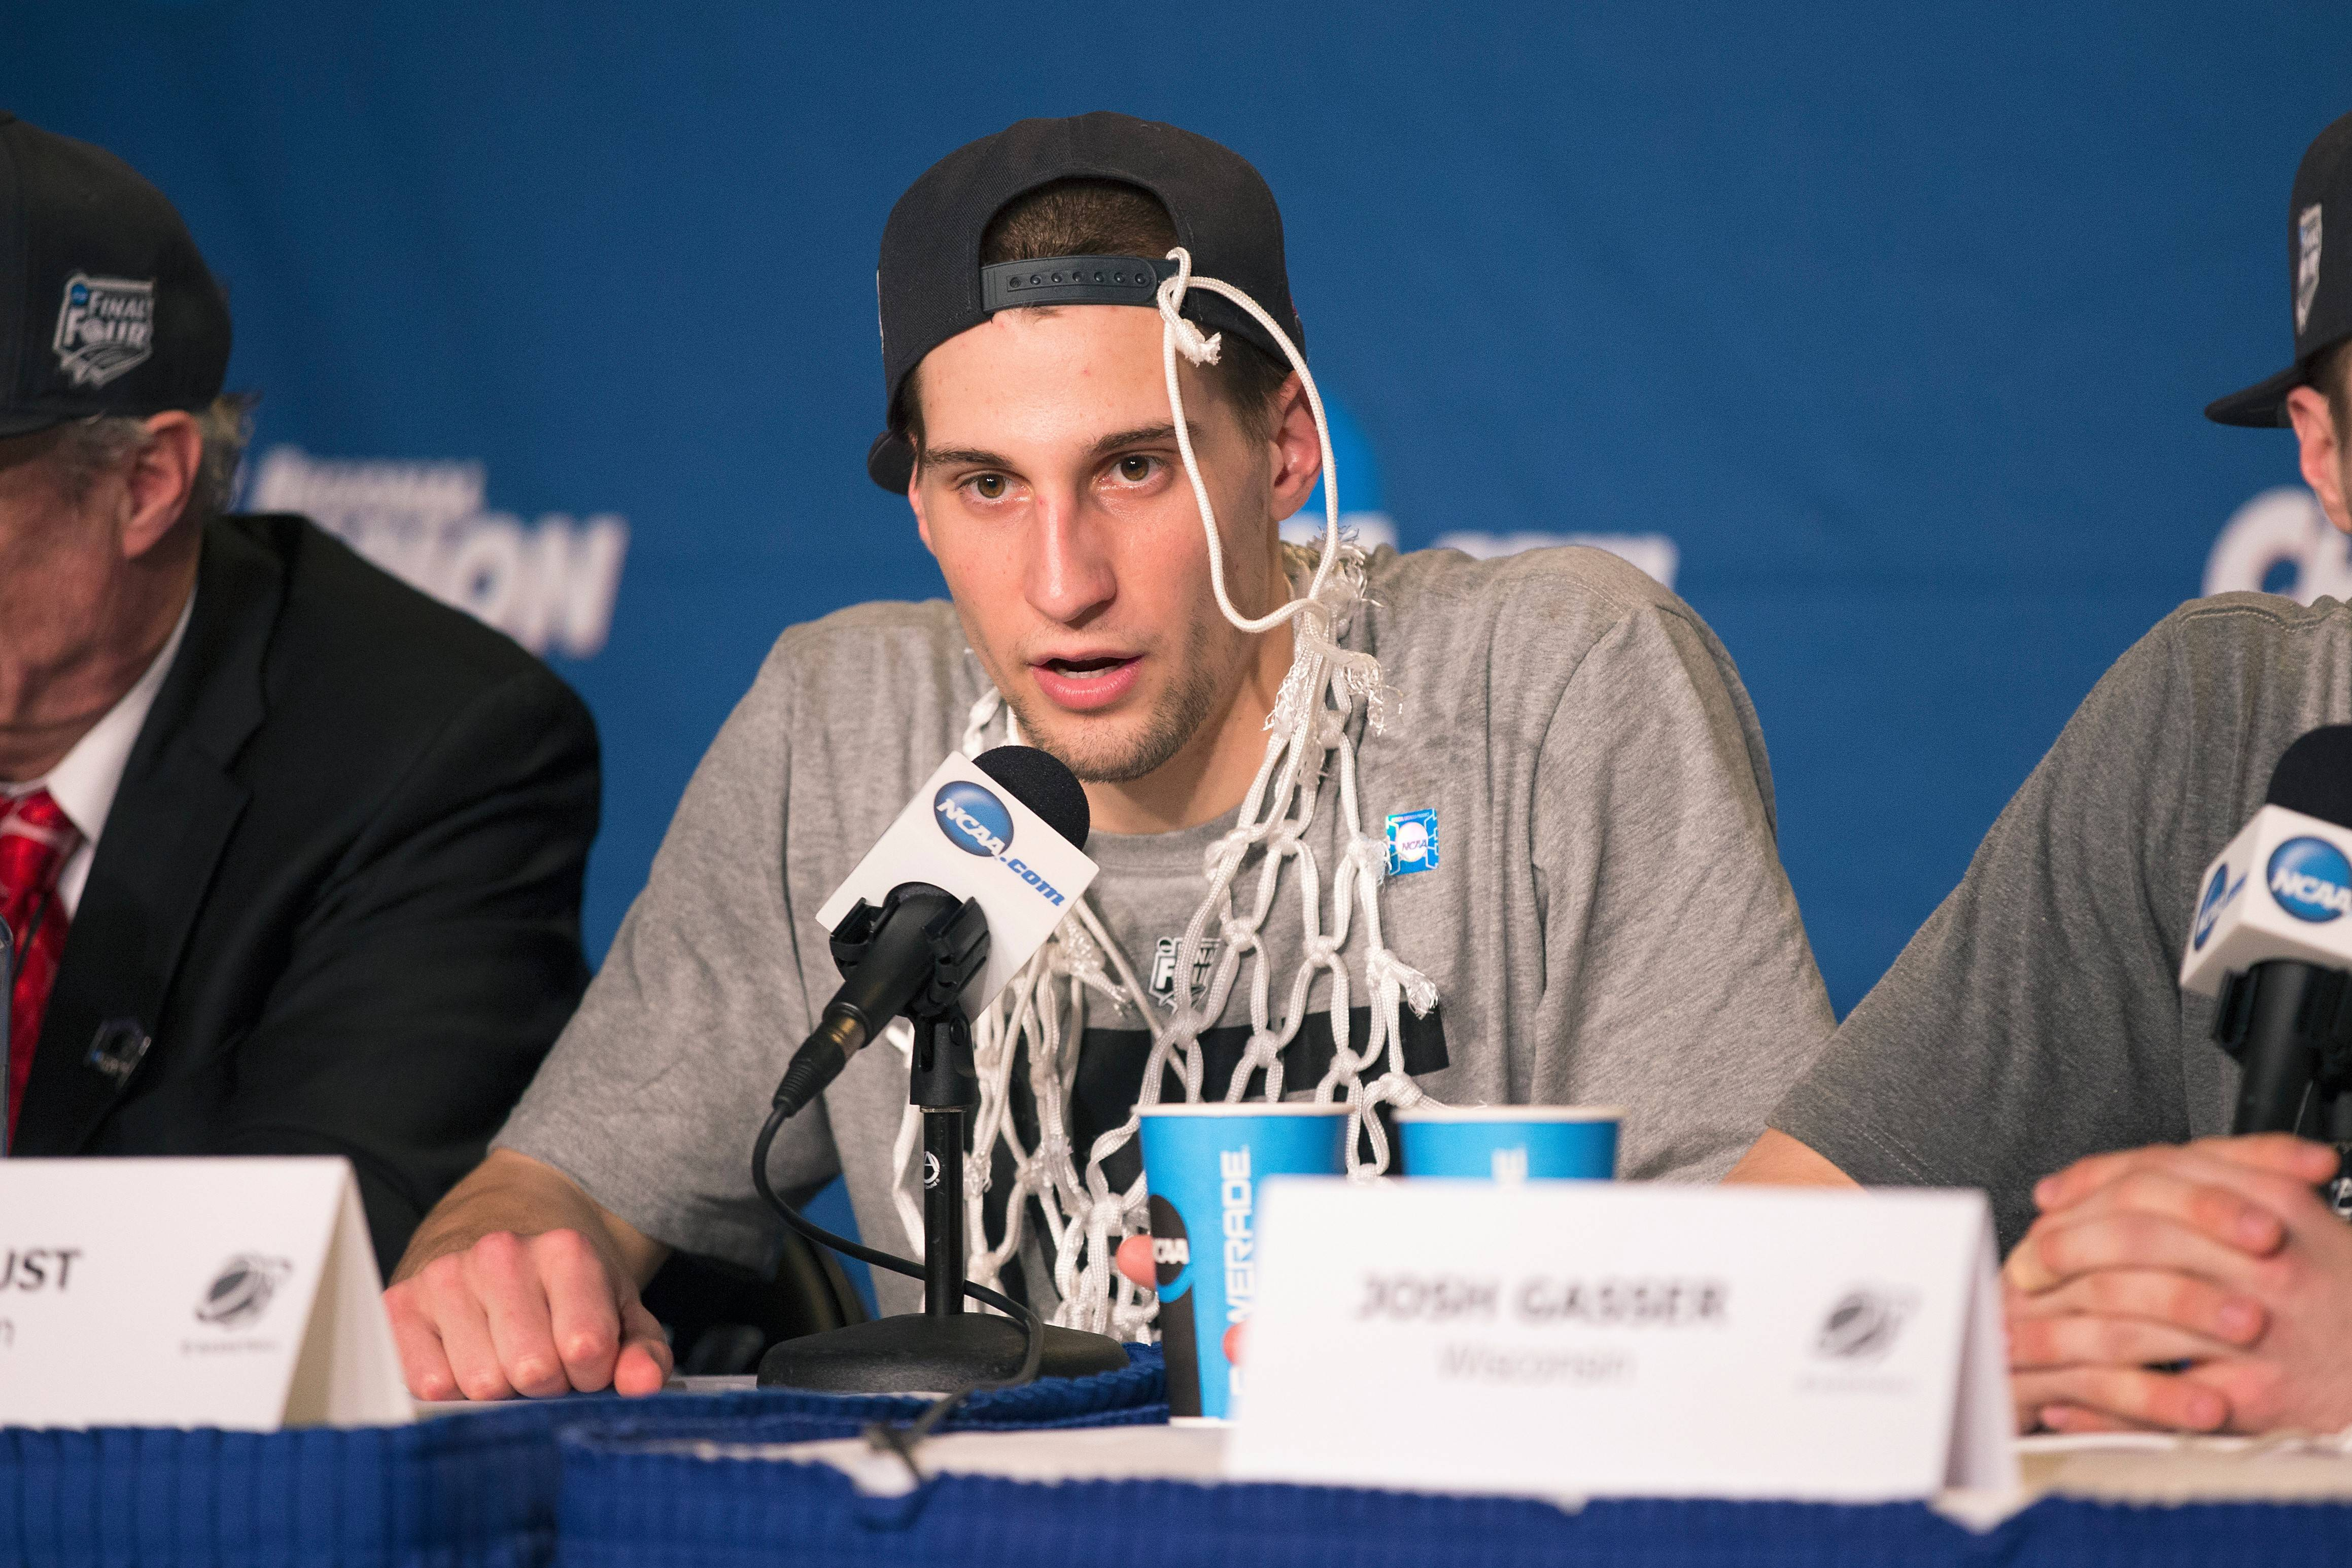 Wisconsin guard Ben Brust talks to the media after the West region victory against Arizona — with a piece of the elusive net hanging from his cap.